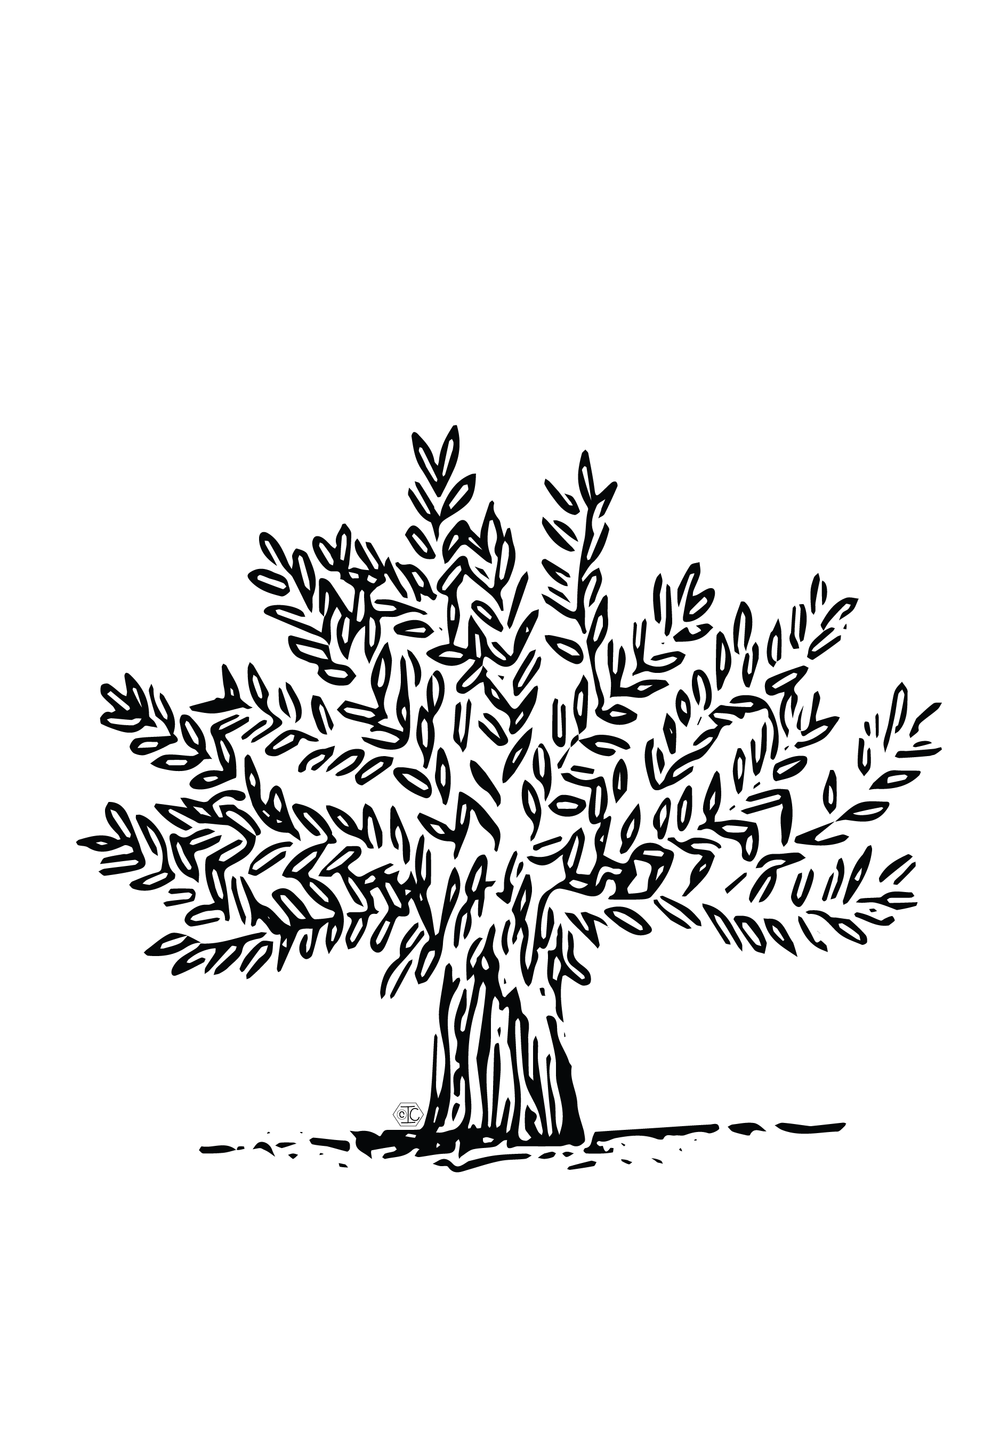 Olive Tree_CARD 900x1300px.png